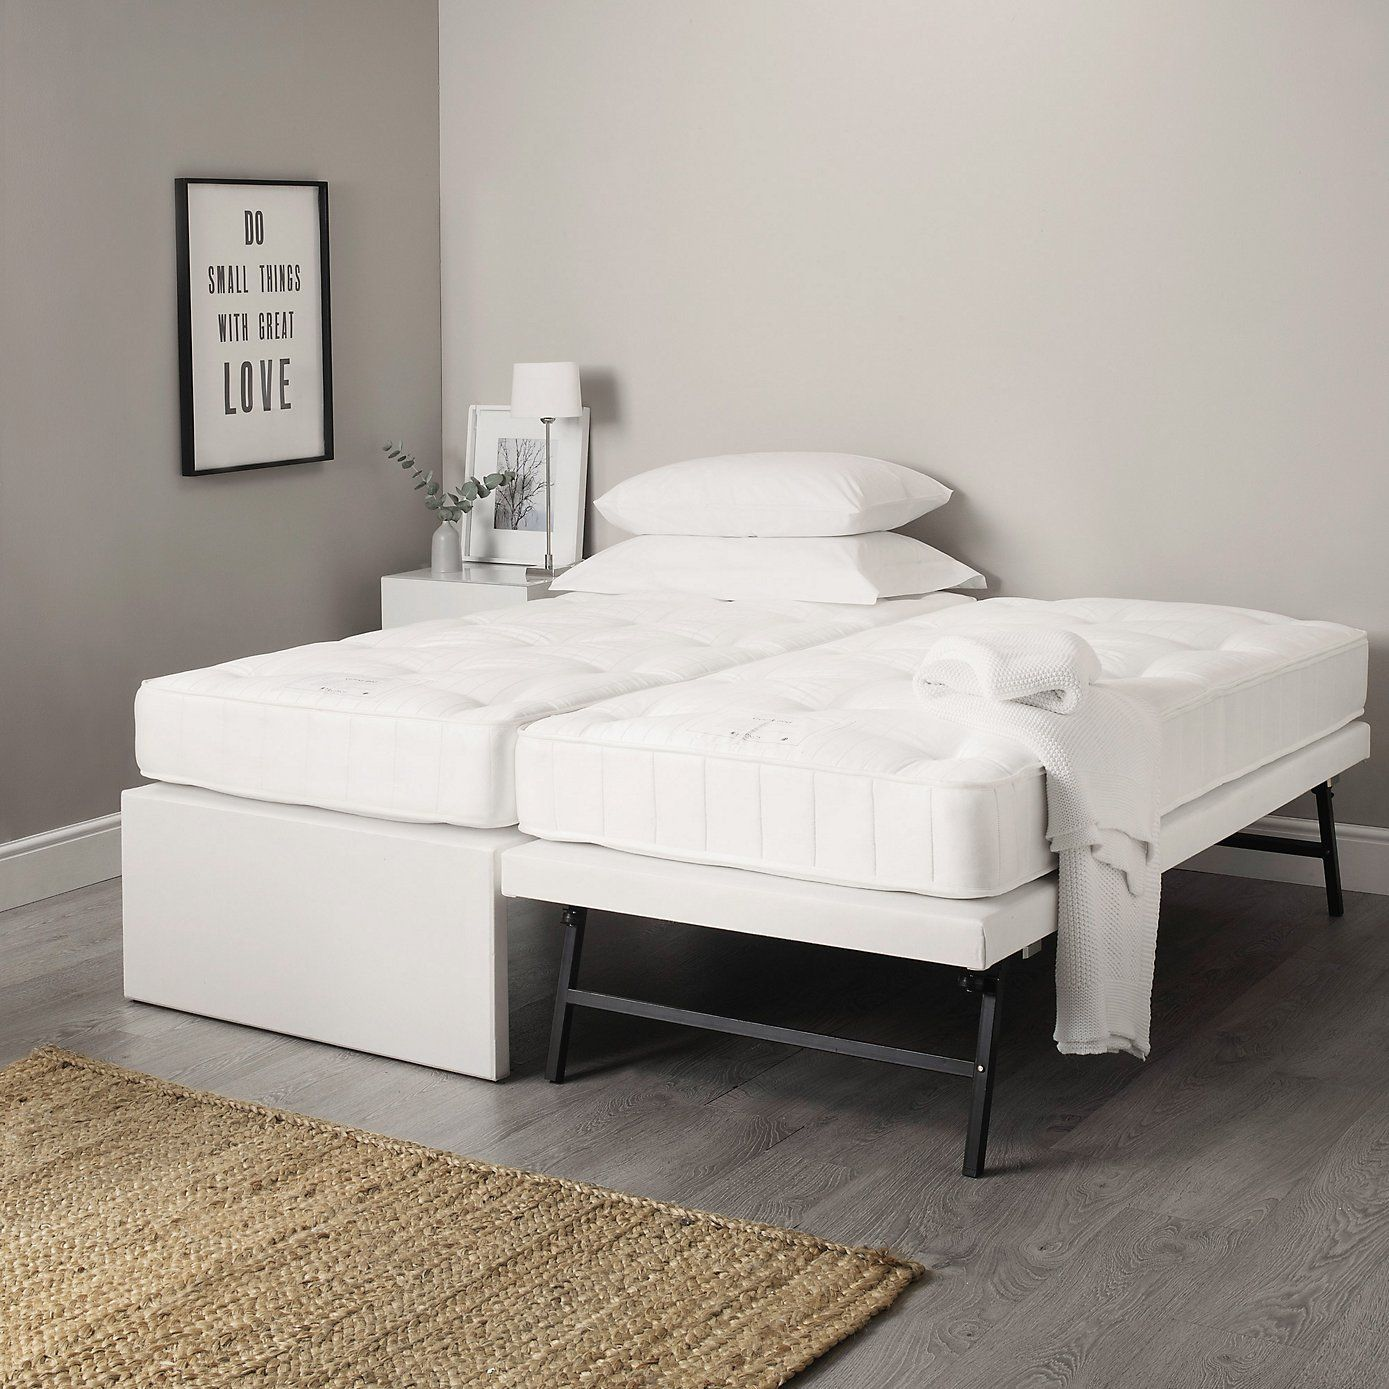 Guest Bed Beds The White Company bedroomideassingle